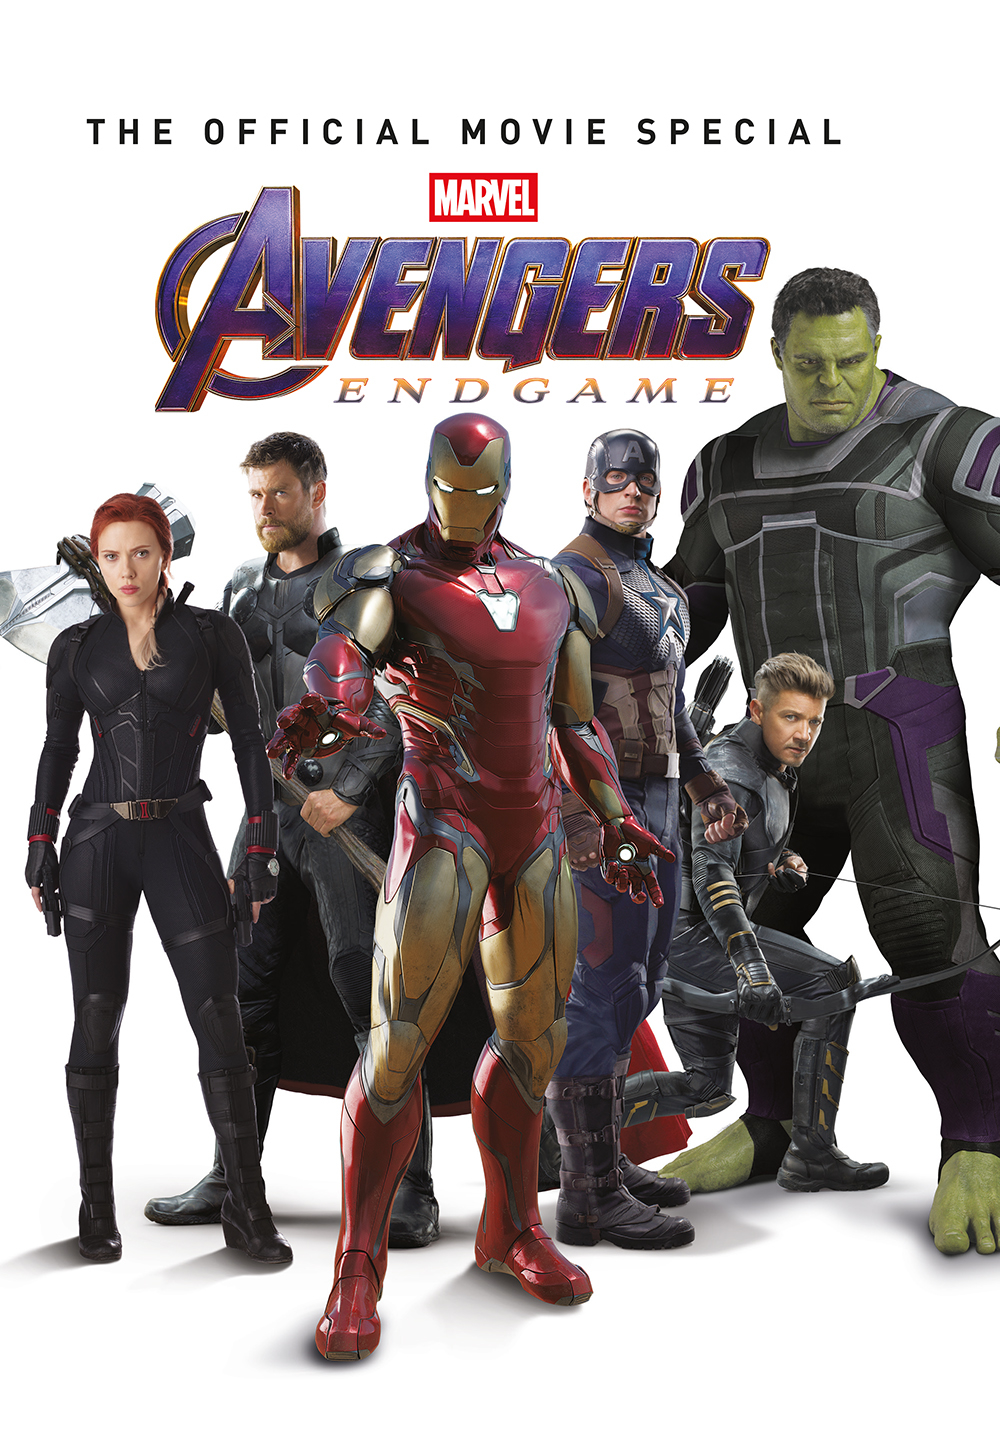 ROAD TO AVENGERS: ENDGAME: OFFICIAL MOVIE SPECIAL ED HC